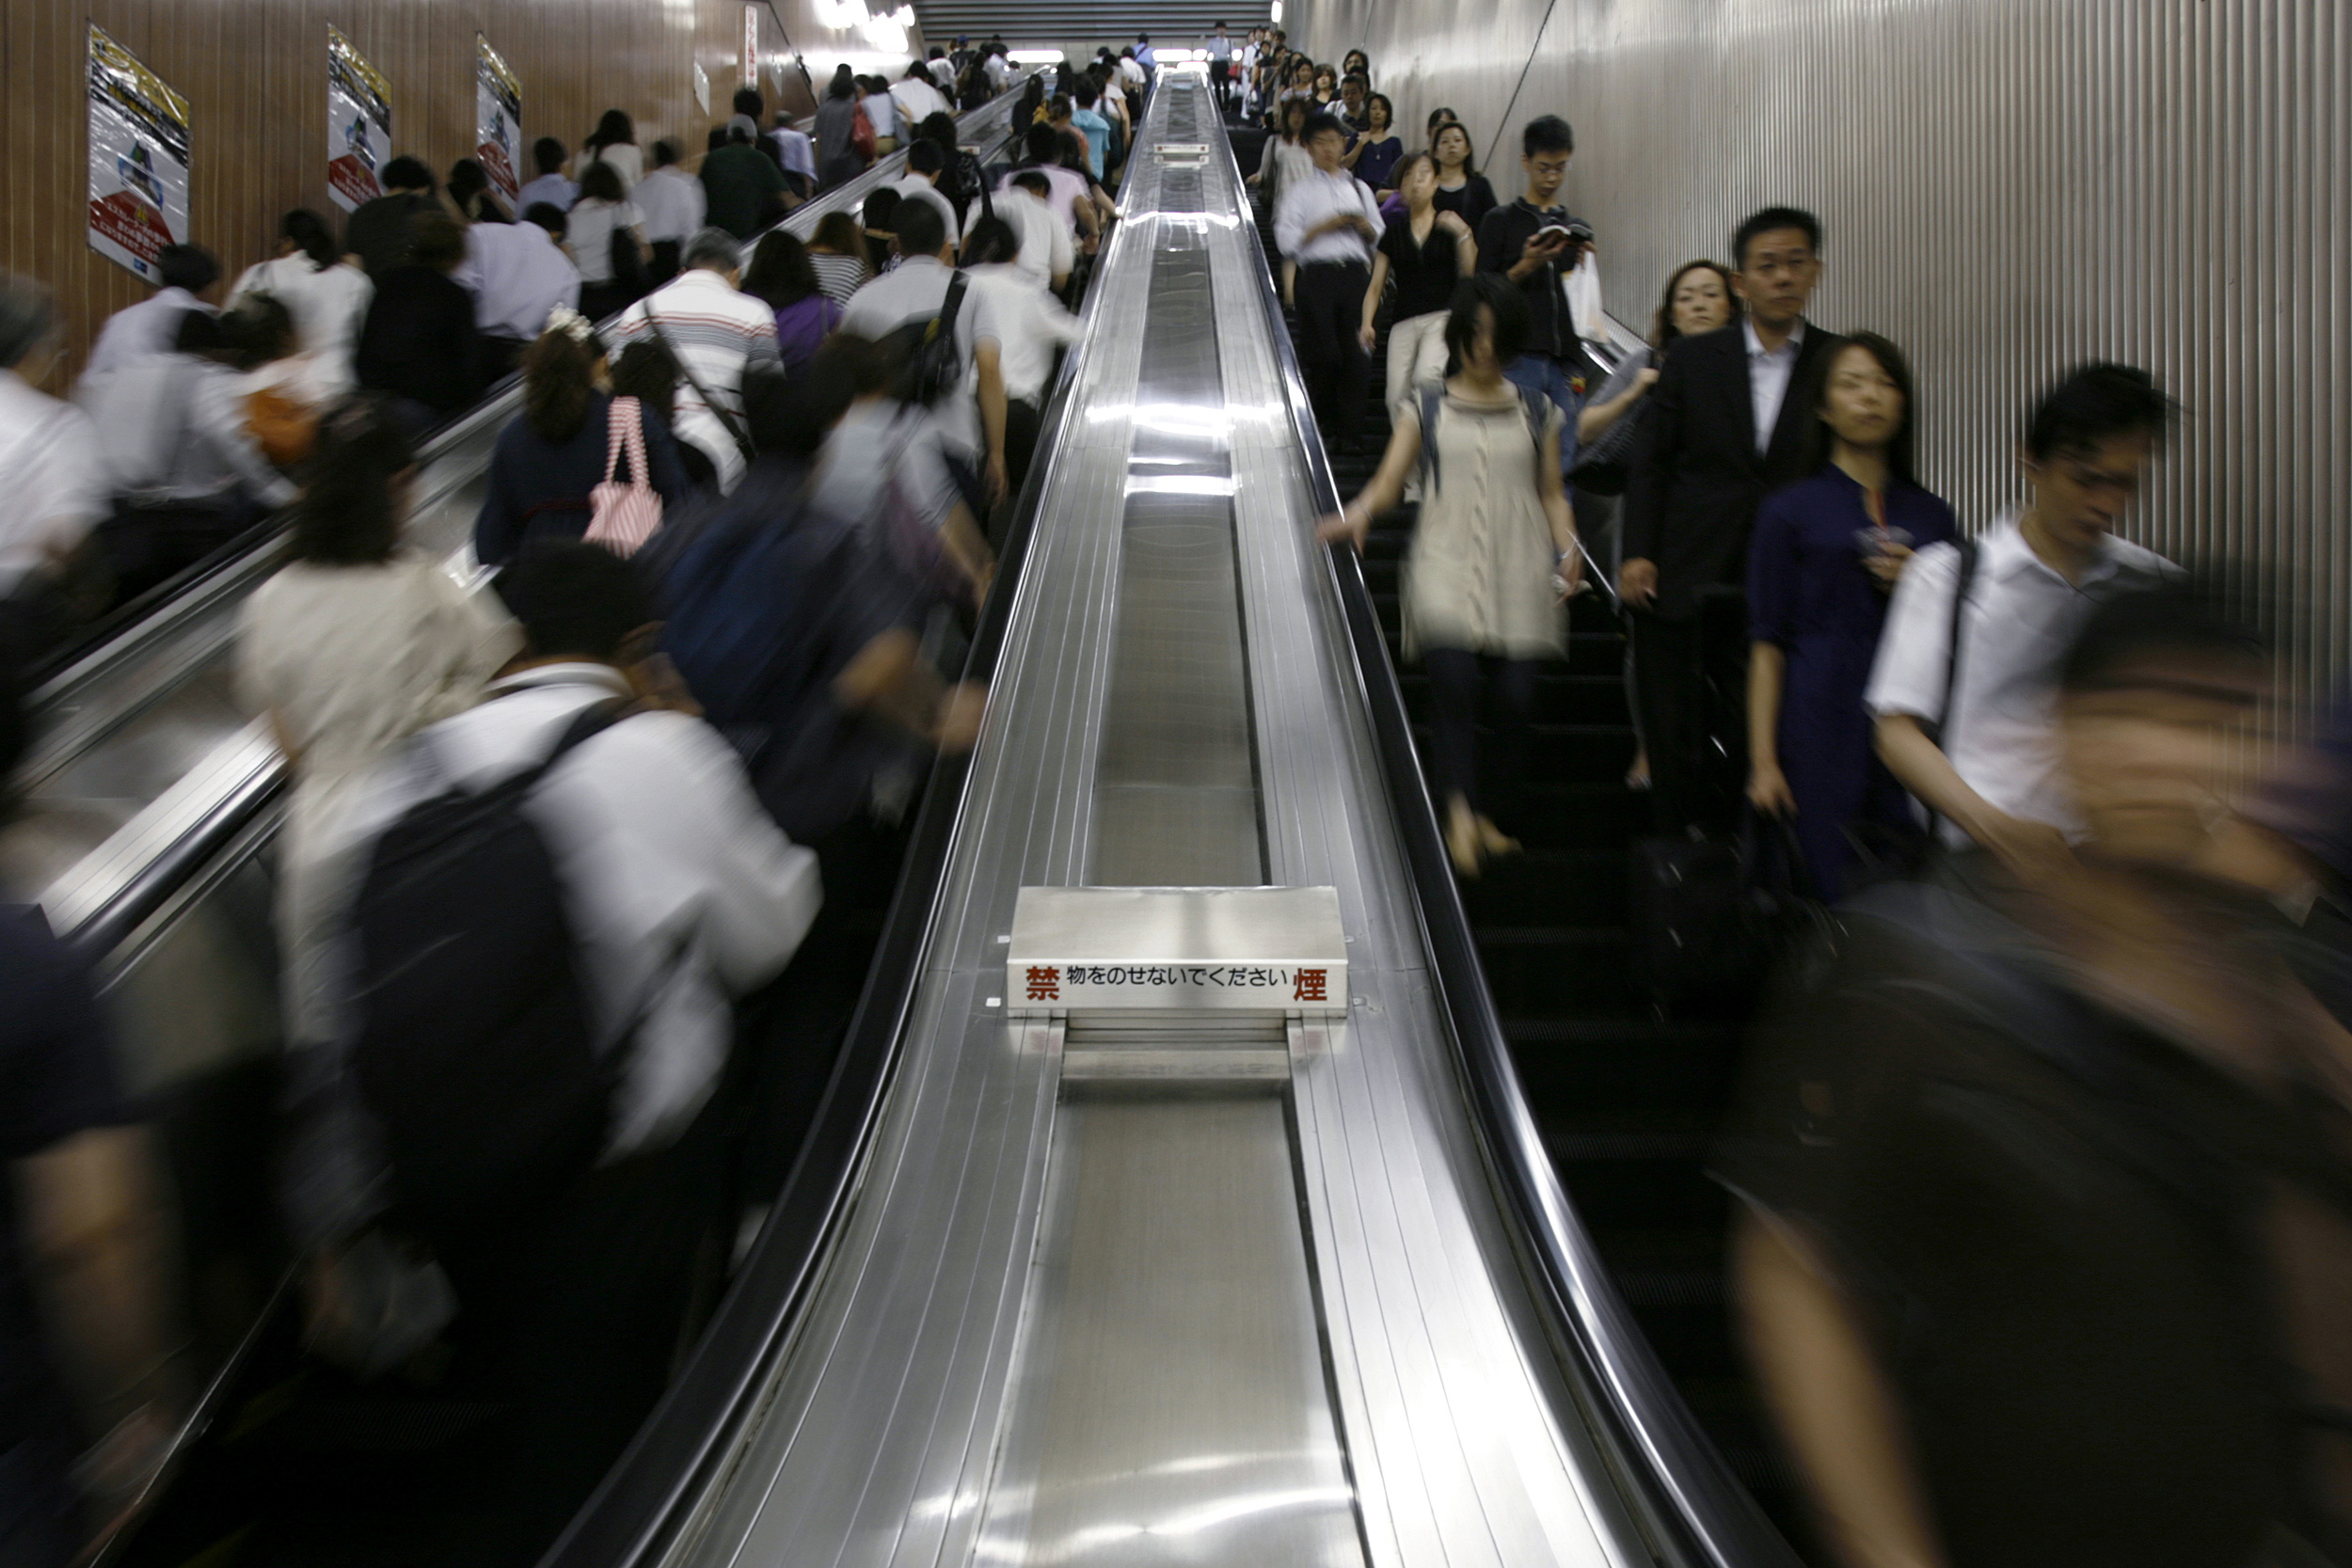 Going down: Commuters use escalators at Tokyo Station in August 2009. | REUTERS